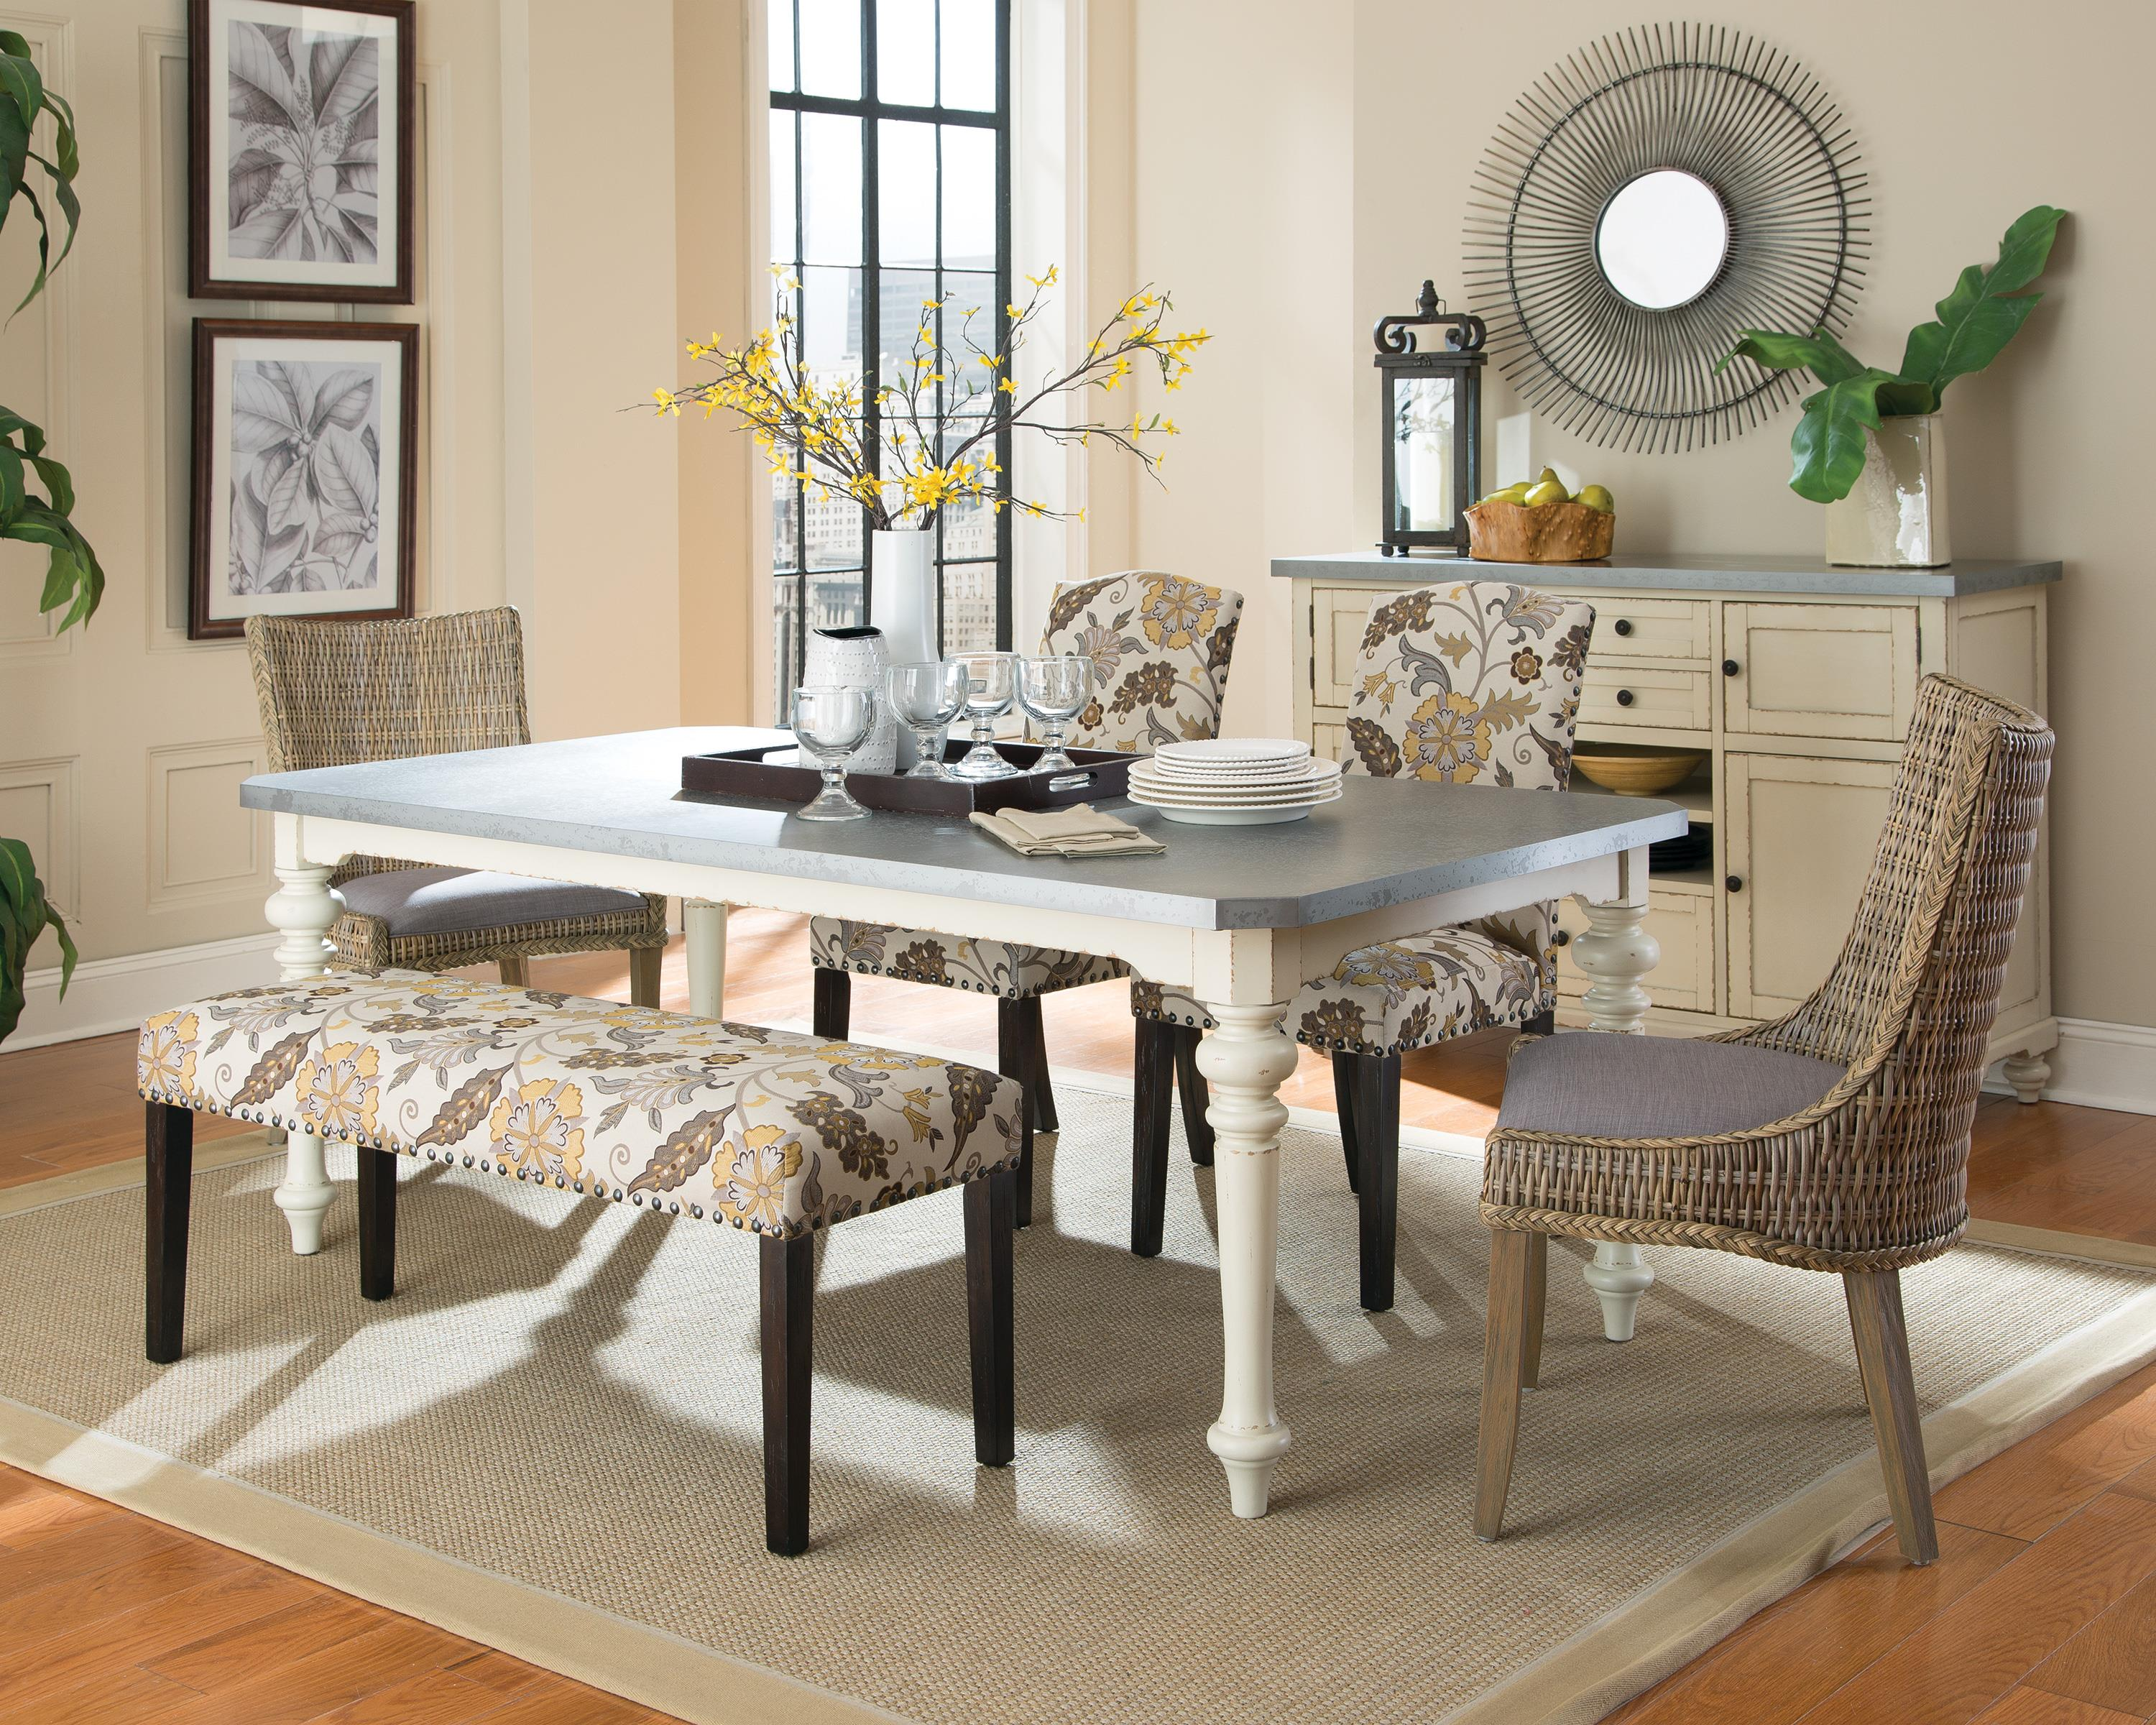 Beau Coaster Matisse Country Cottage Woven Dining Chair With Cushioned Seat |  Value City Furniture | Dining Side Chairs